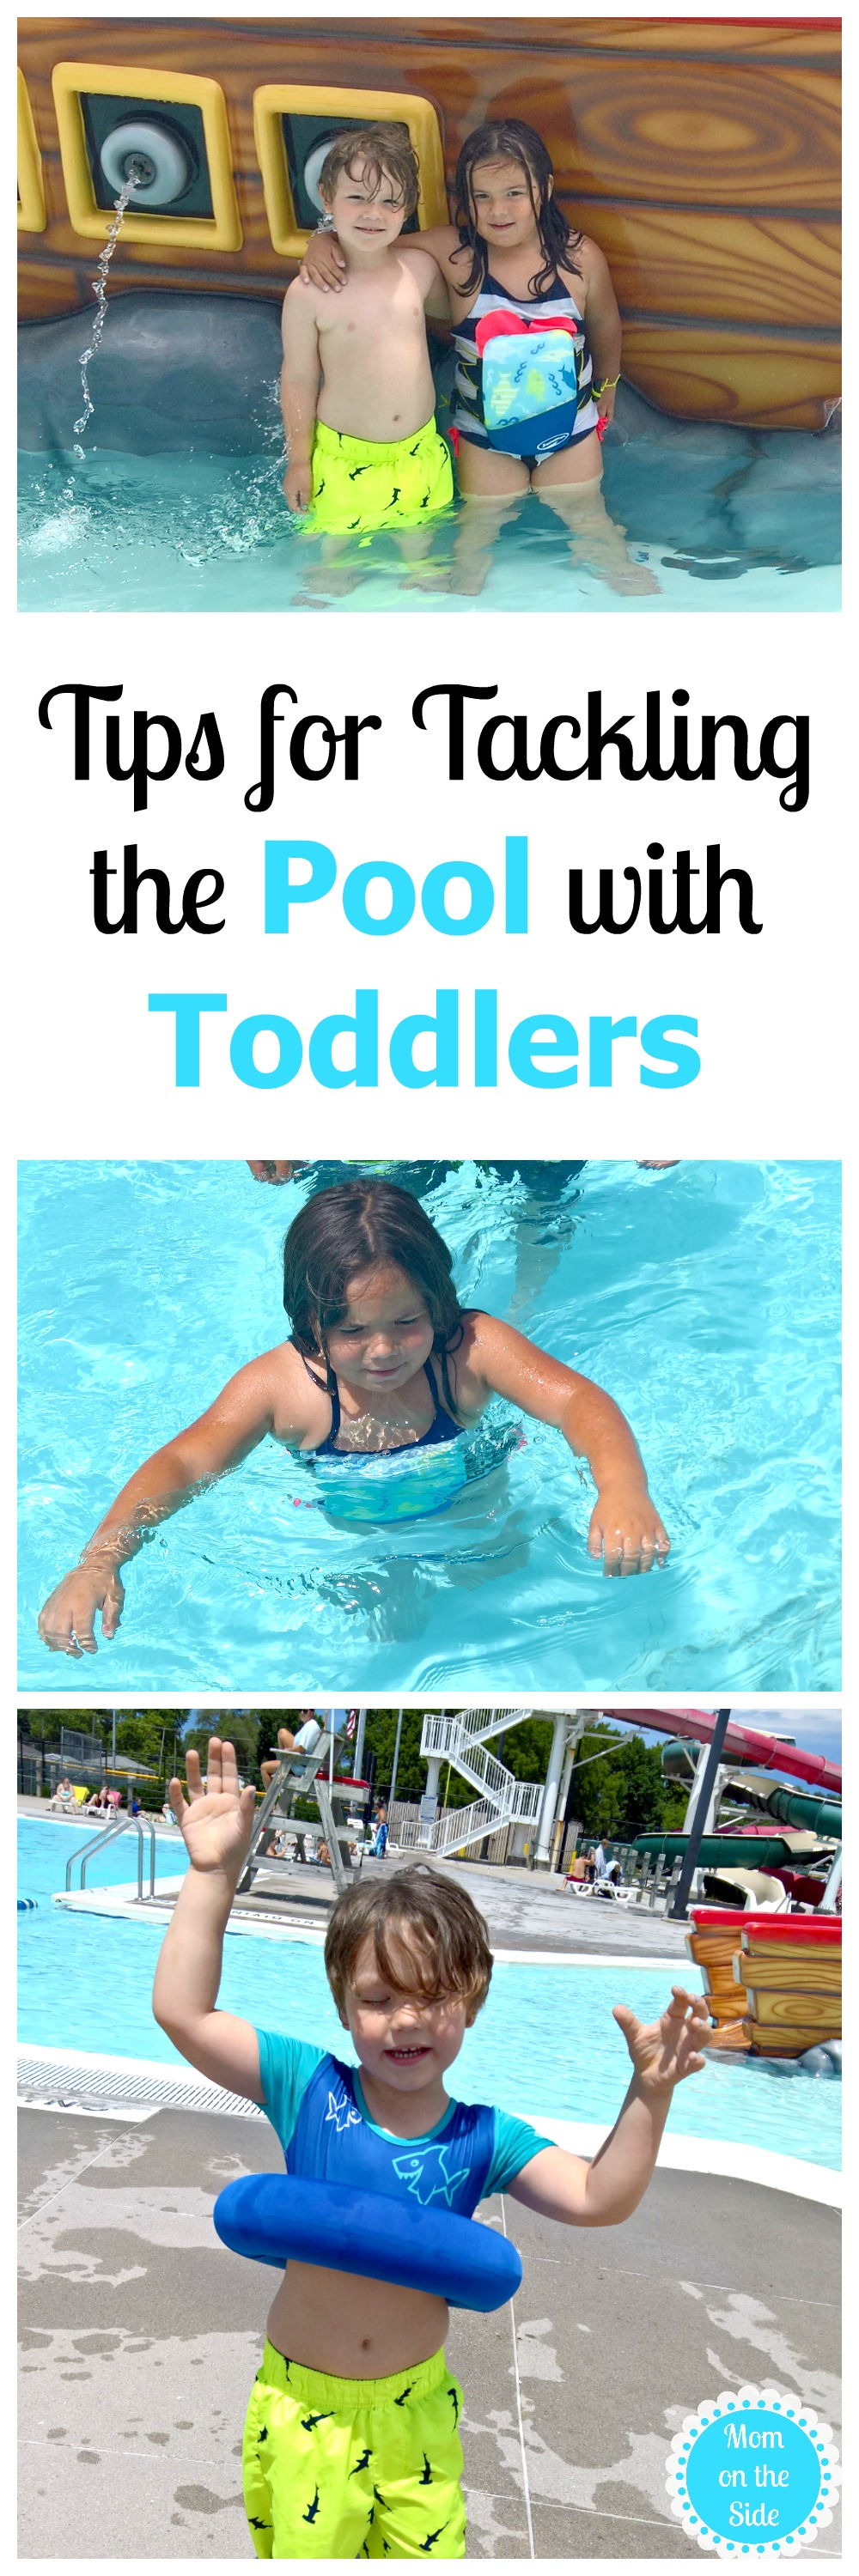 Best Tips for Tackling the Pool with Toddlers this Summer